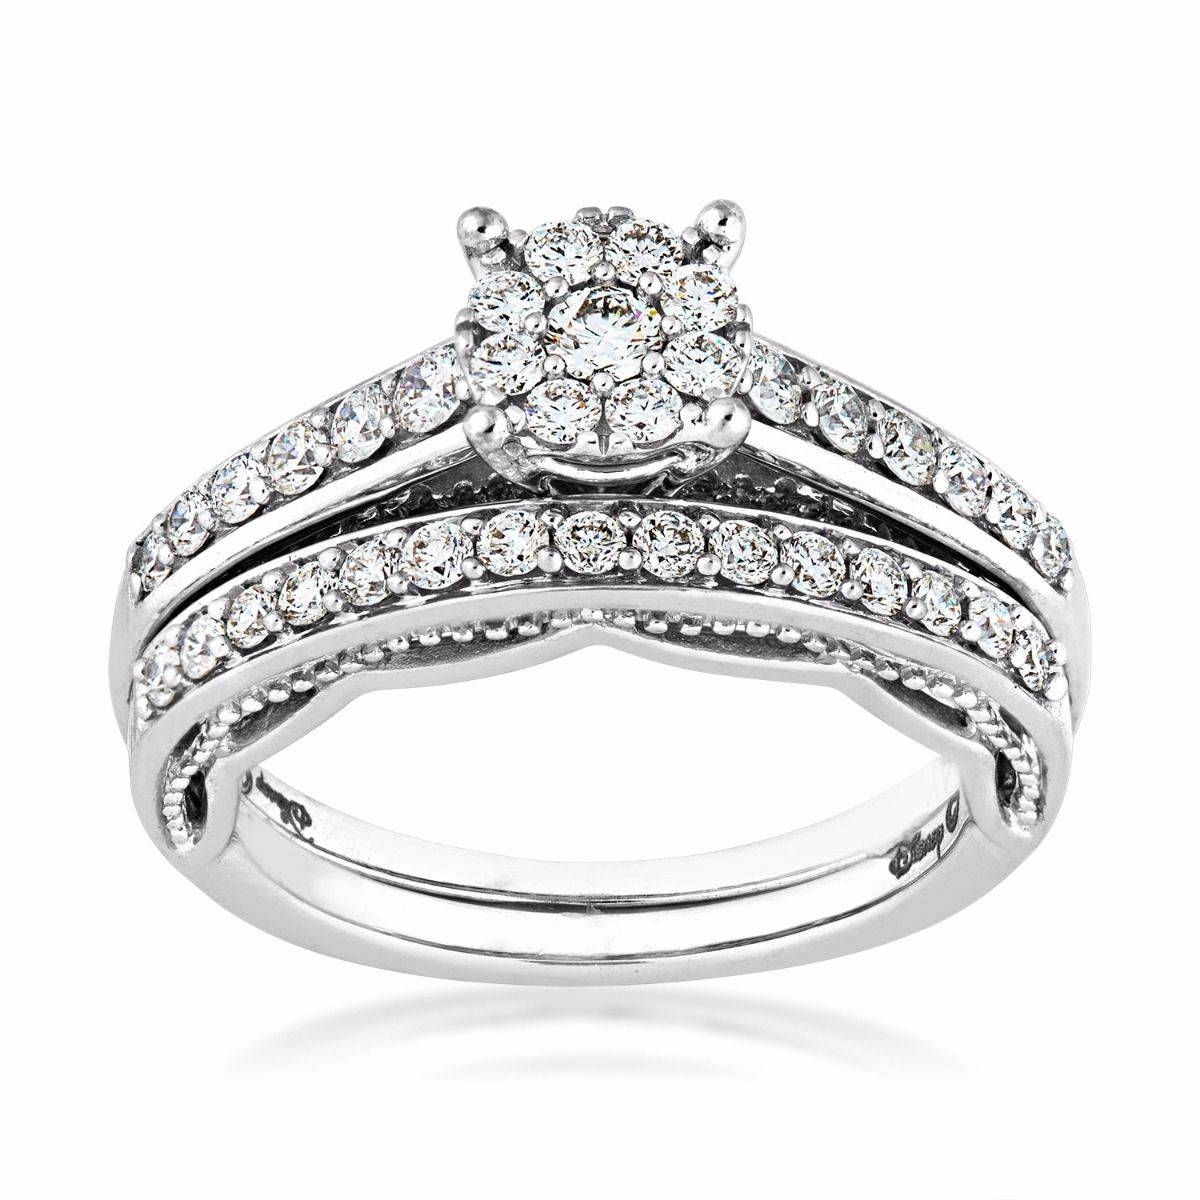 ring cheap womens wedding rings wedding bands and rings flower throughout country wedding bands gallery - Country Wedding Rings